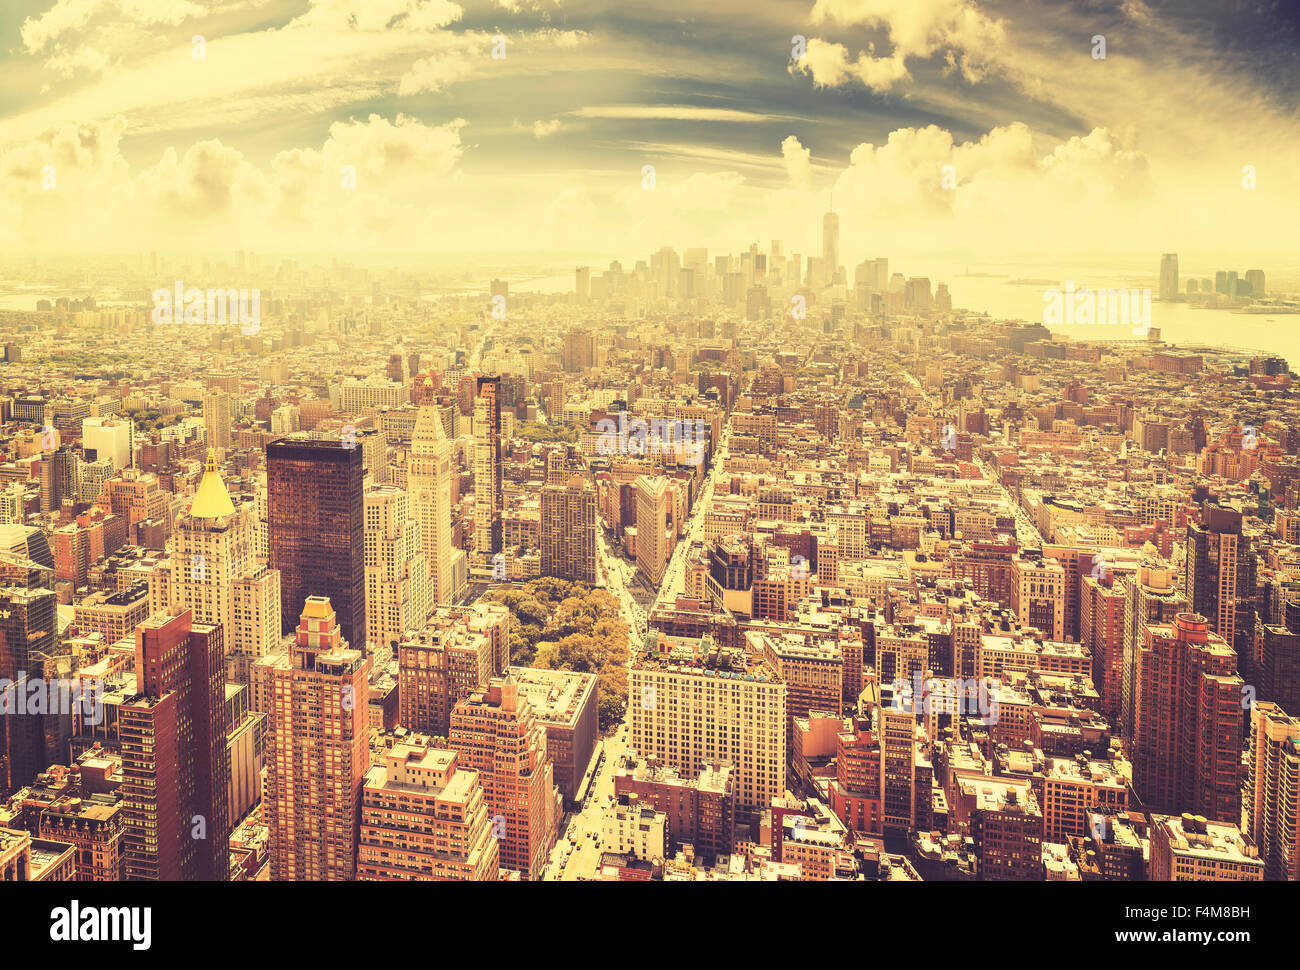 Vintage tonica skyline di Manhattan, New York City, Stati Uniti d'America. Immagini Stock